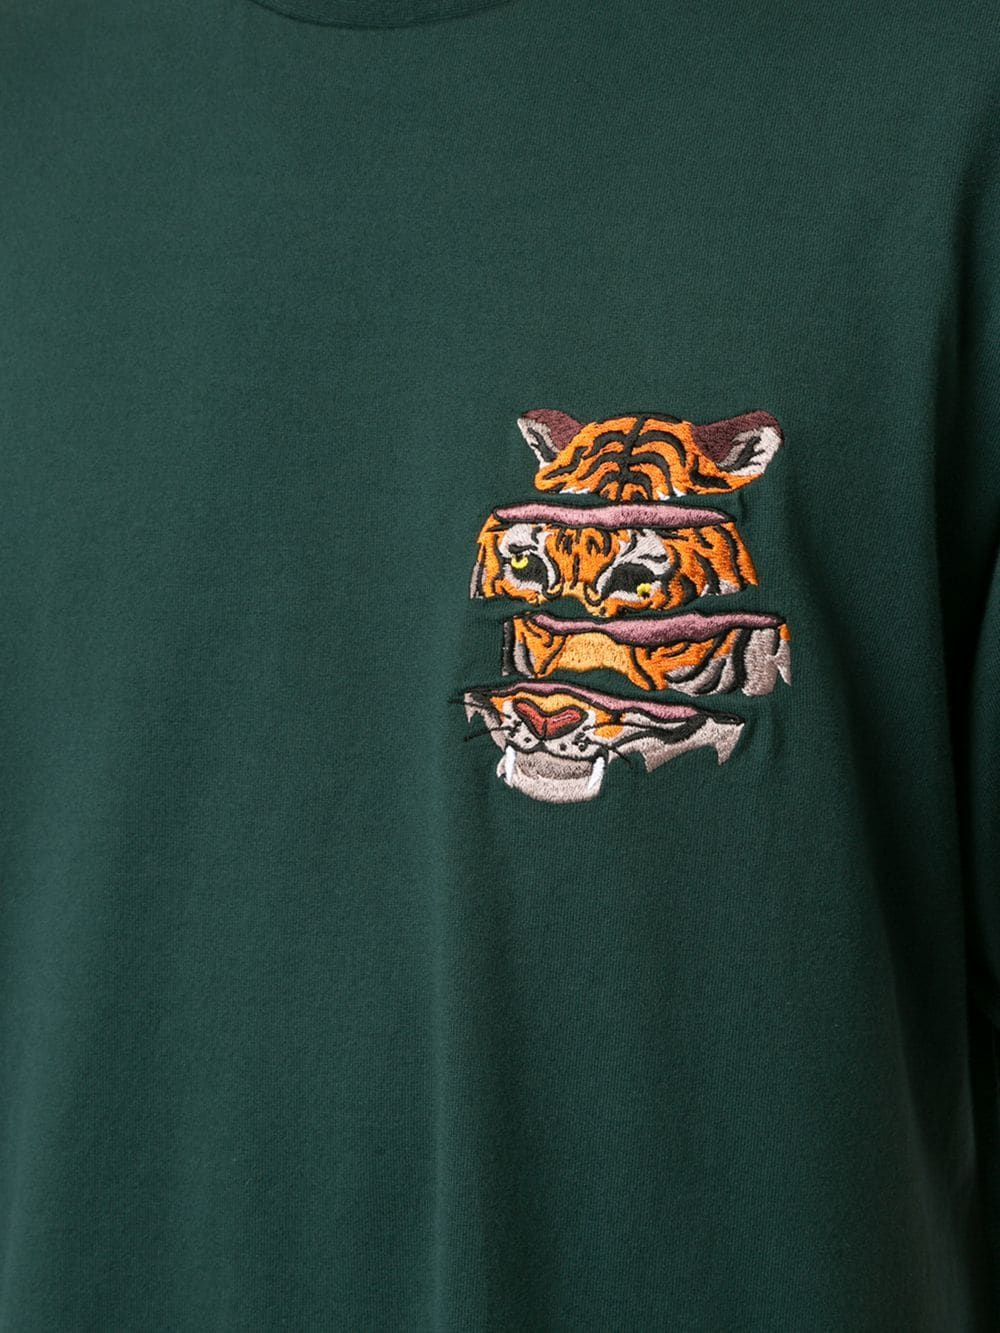 Johnundercover Tiger T Shirt In 2020 Polo Shirt Design Tiger T